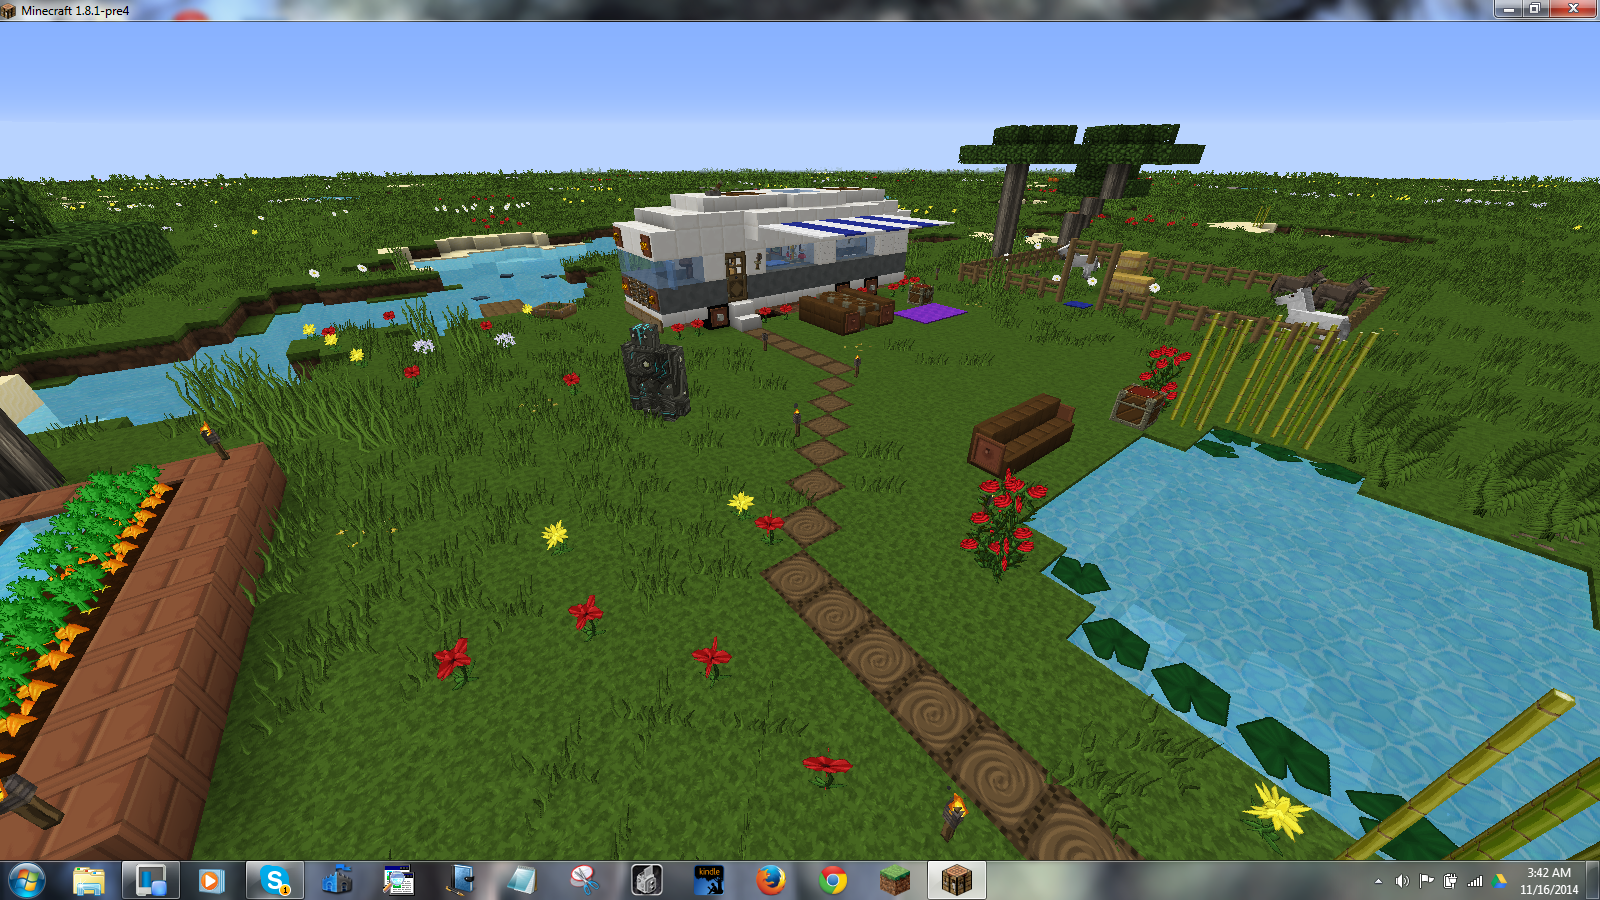 I Built This Following A Lets Build Minecraft Vehicle Tutorial How - Minecraft gutes haus bauen anleitung